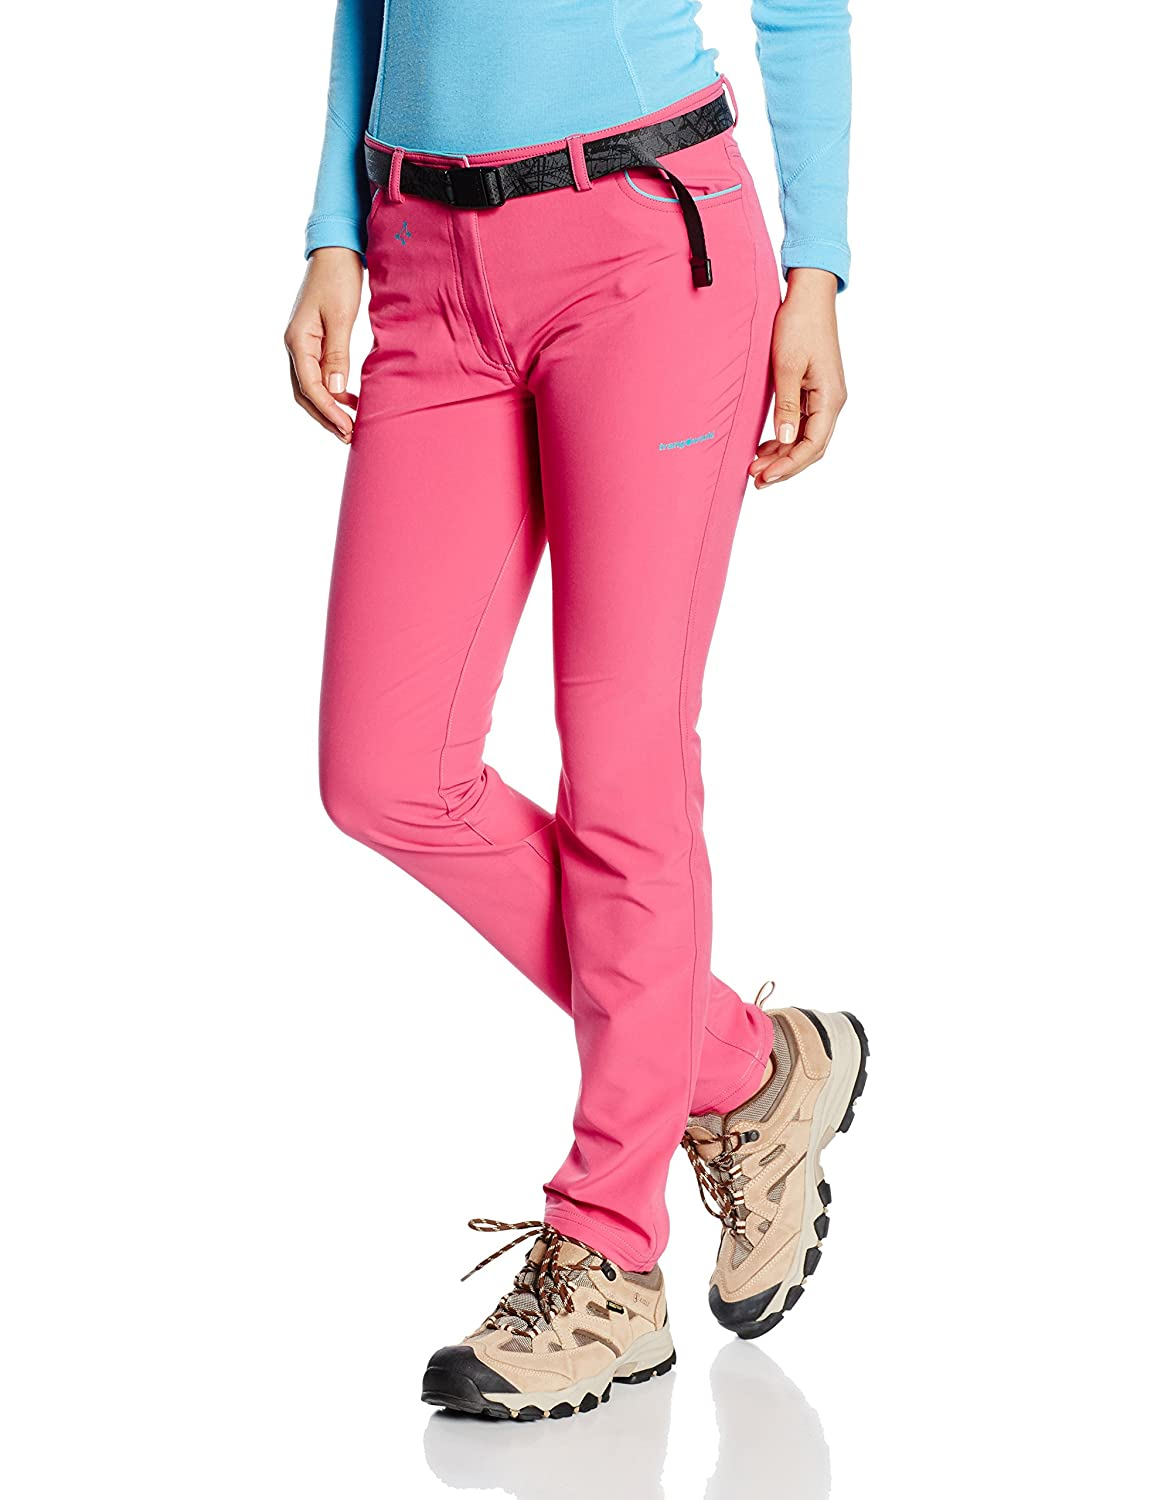 Trango Damen Hose Pants LARGO ELBERT, 8433849406863